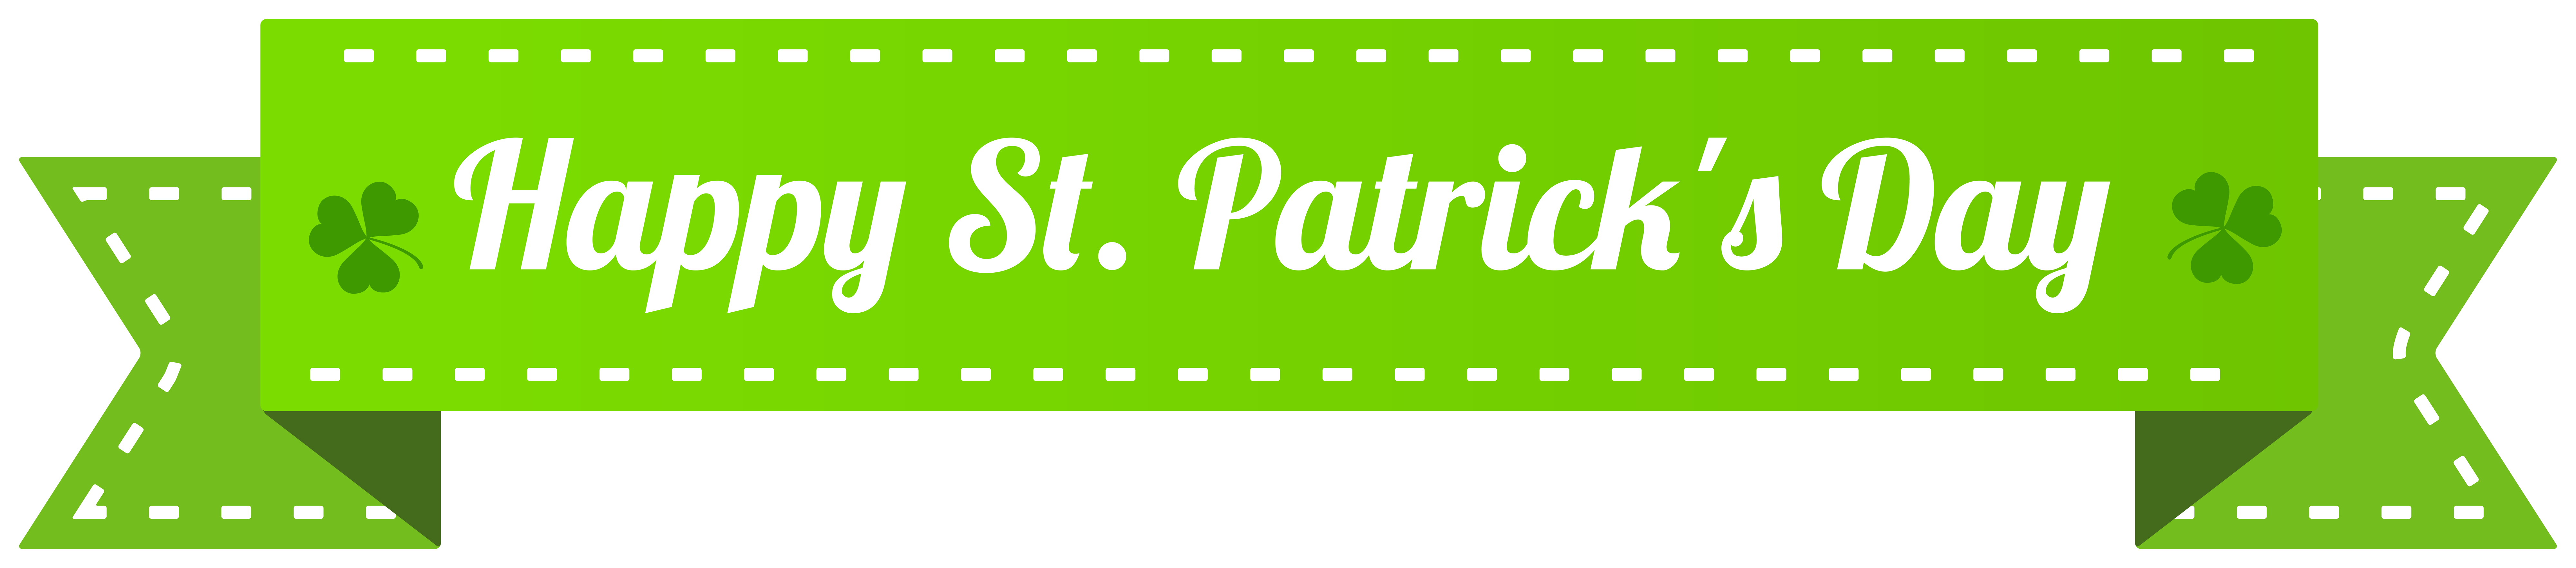 picture royalty free stock Happy st patrick's day clipart. Patrick s banner png